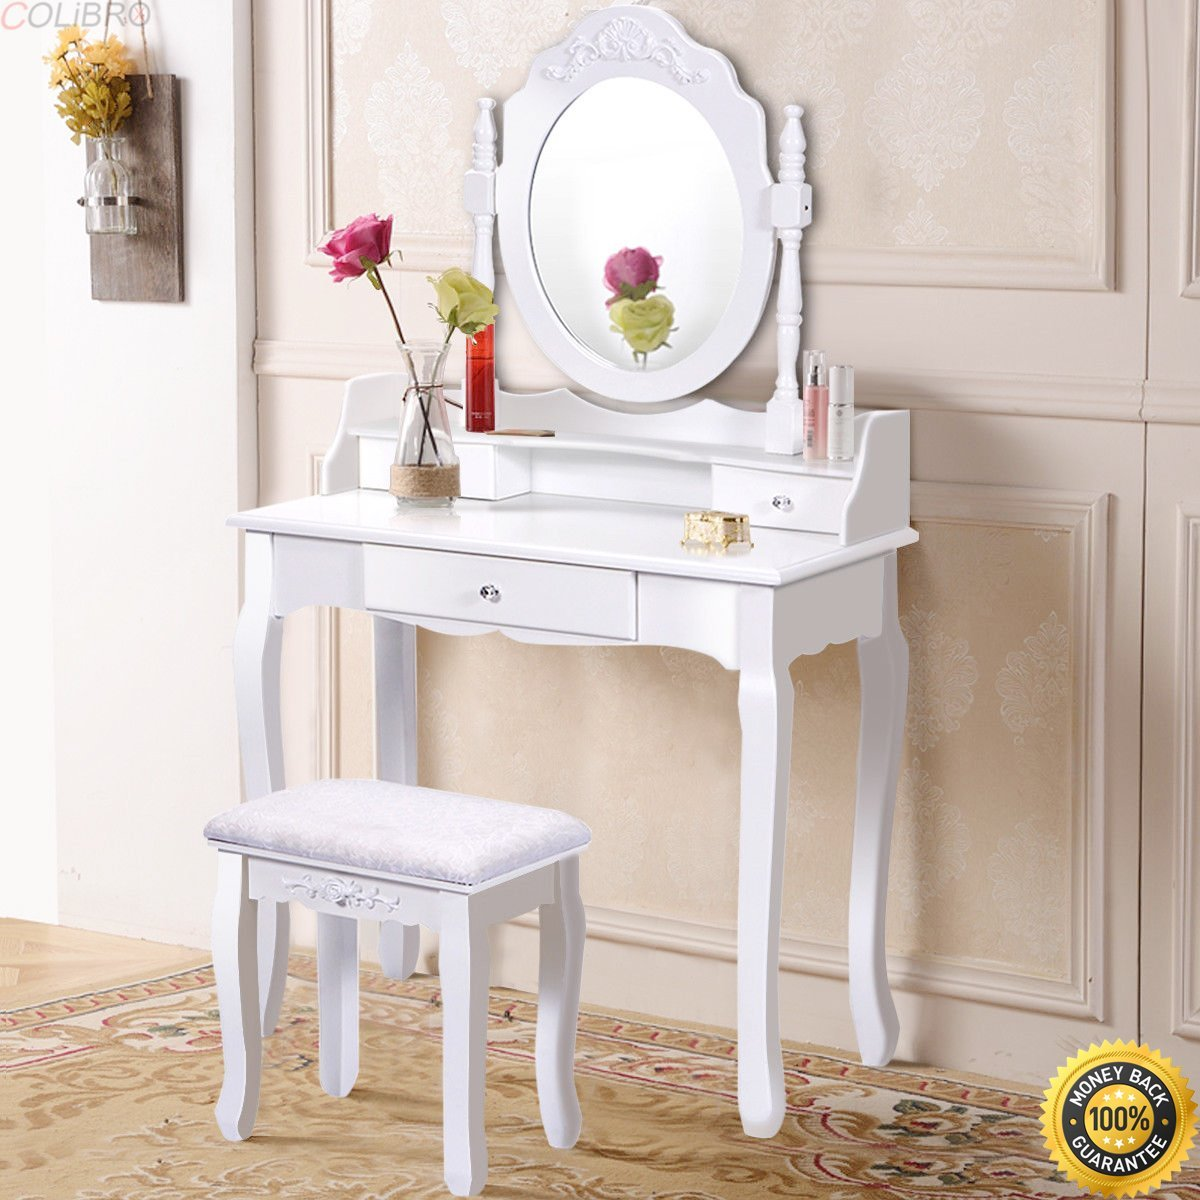 Get Quotations · COLIBROX  White Vanity Wood Makeup Dressing Table Stool  Set Bathroom Mirror + 3 Drawer